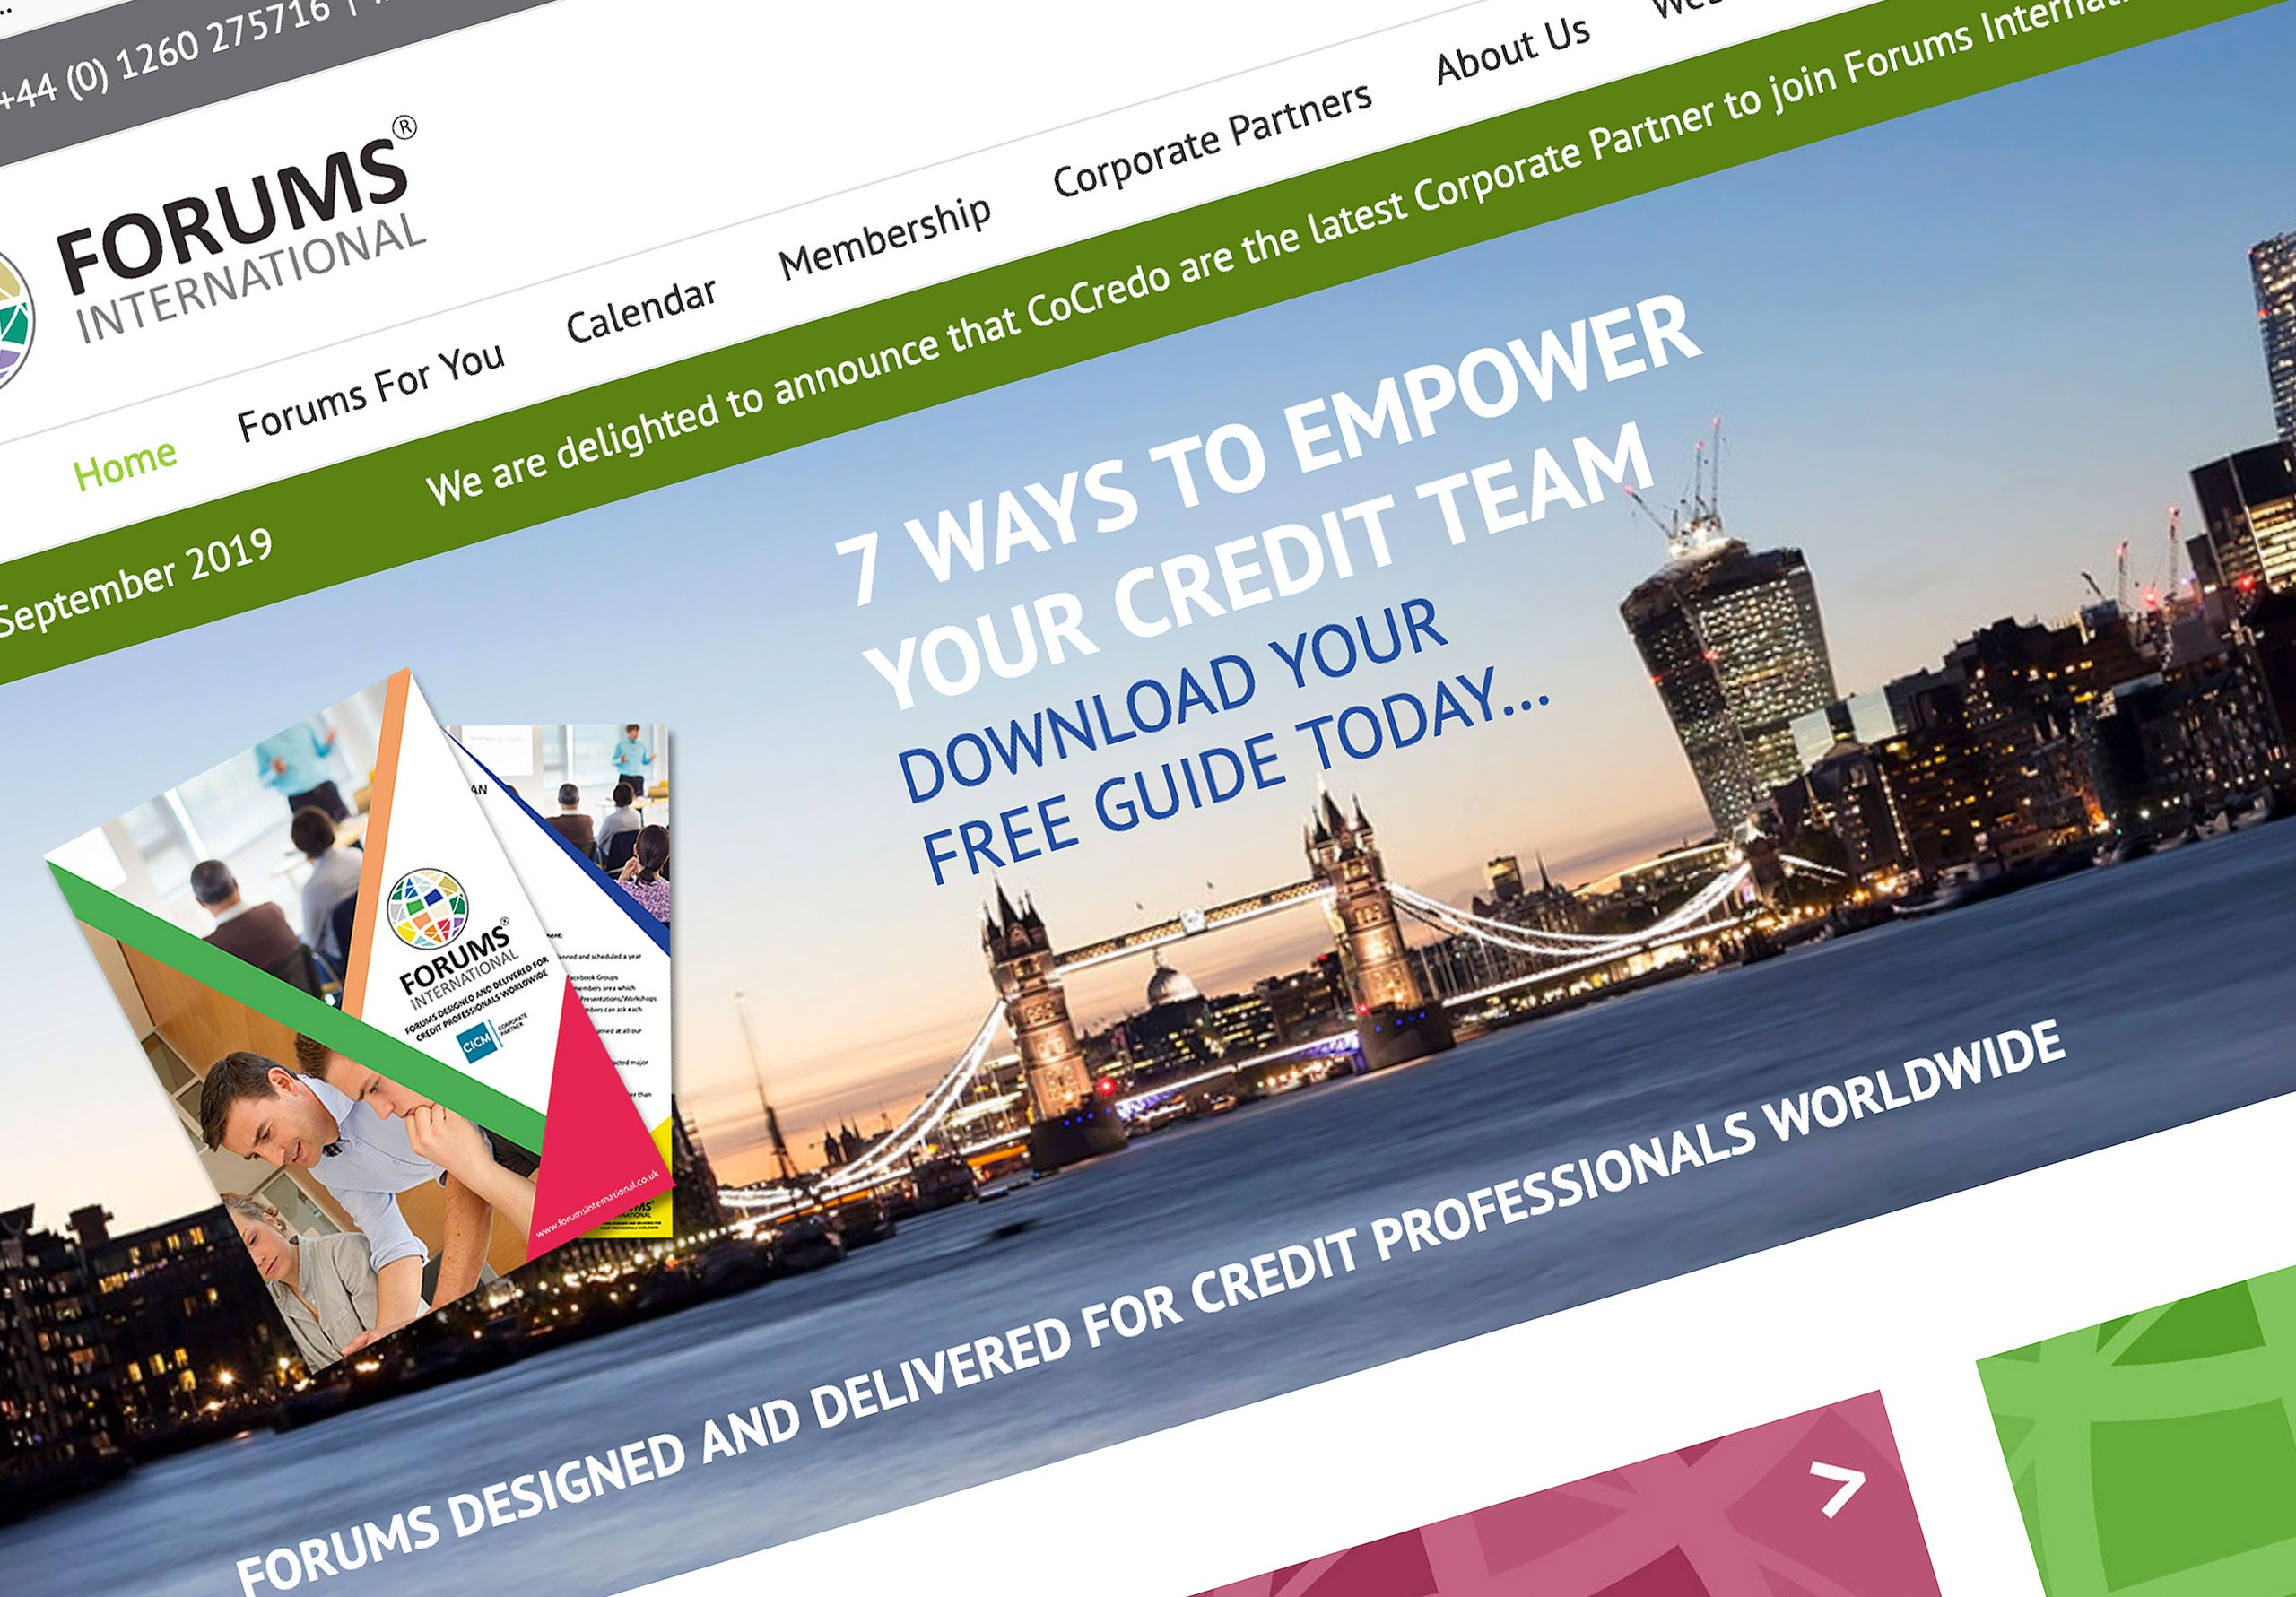 forums international website graphic design doncaster